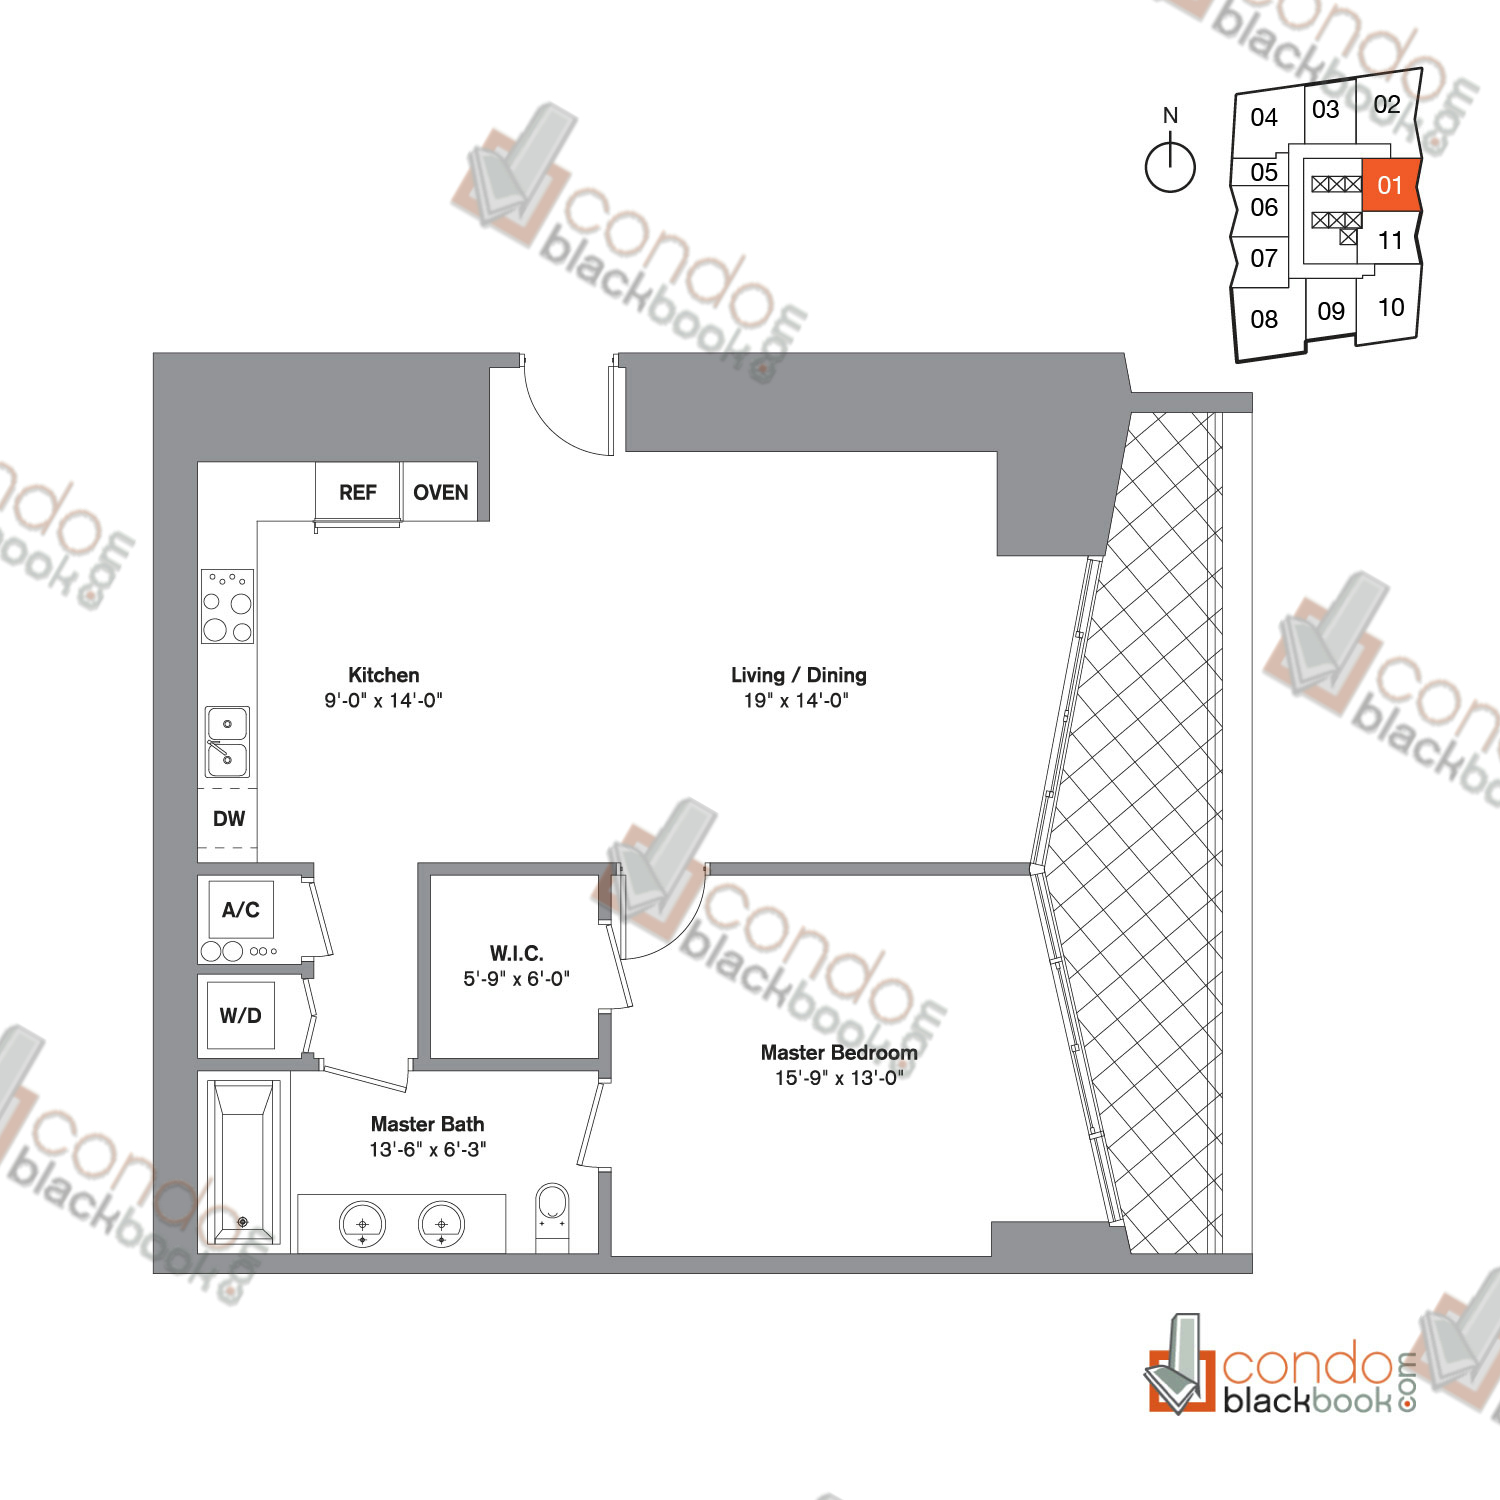 Floor plan for Icon Brickell Viceroy Brickell Miami, model Unit G, line 01, 1/1 bedrooms, 898 sq ft